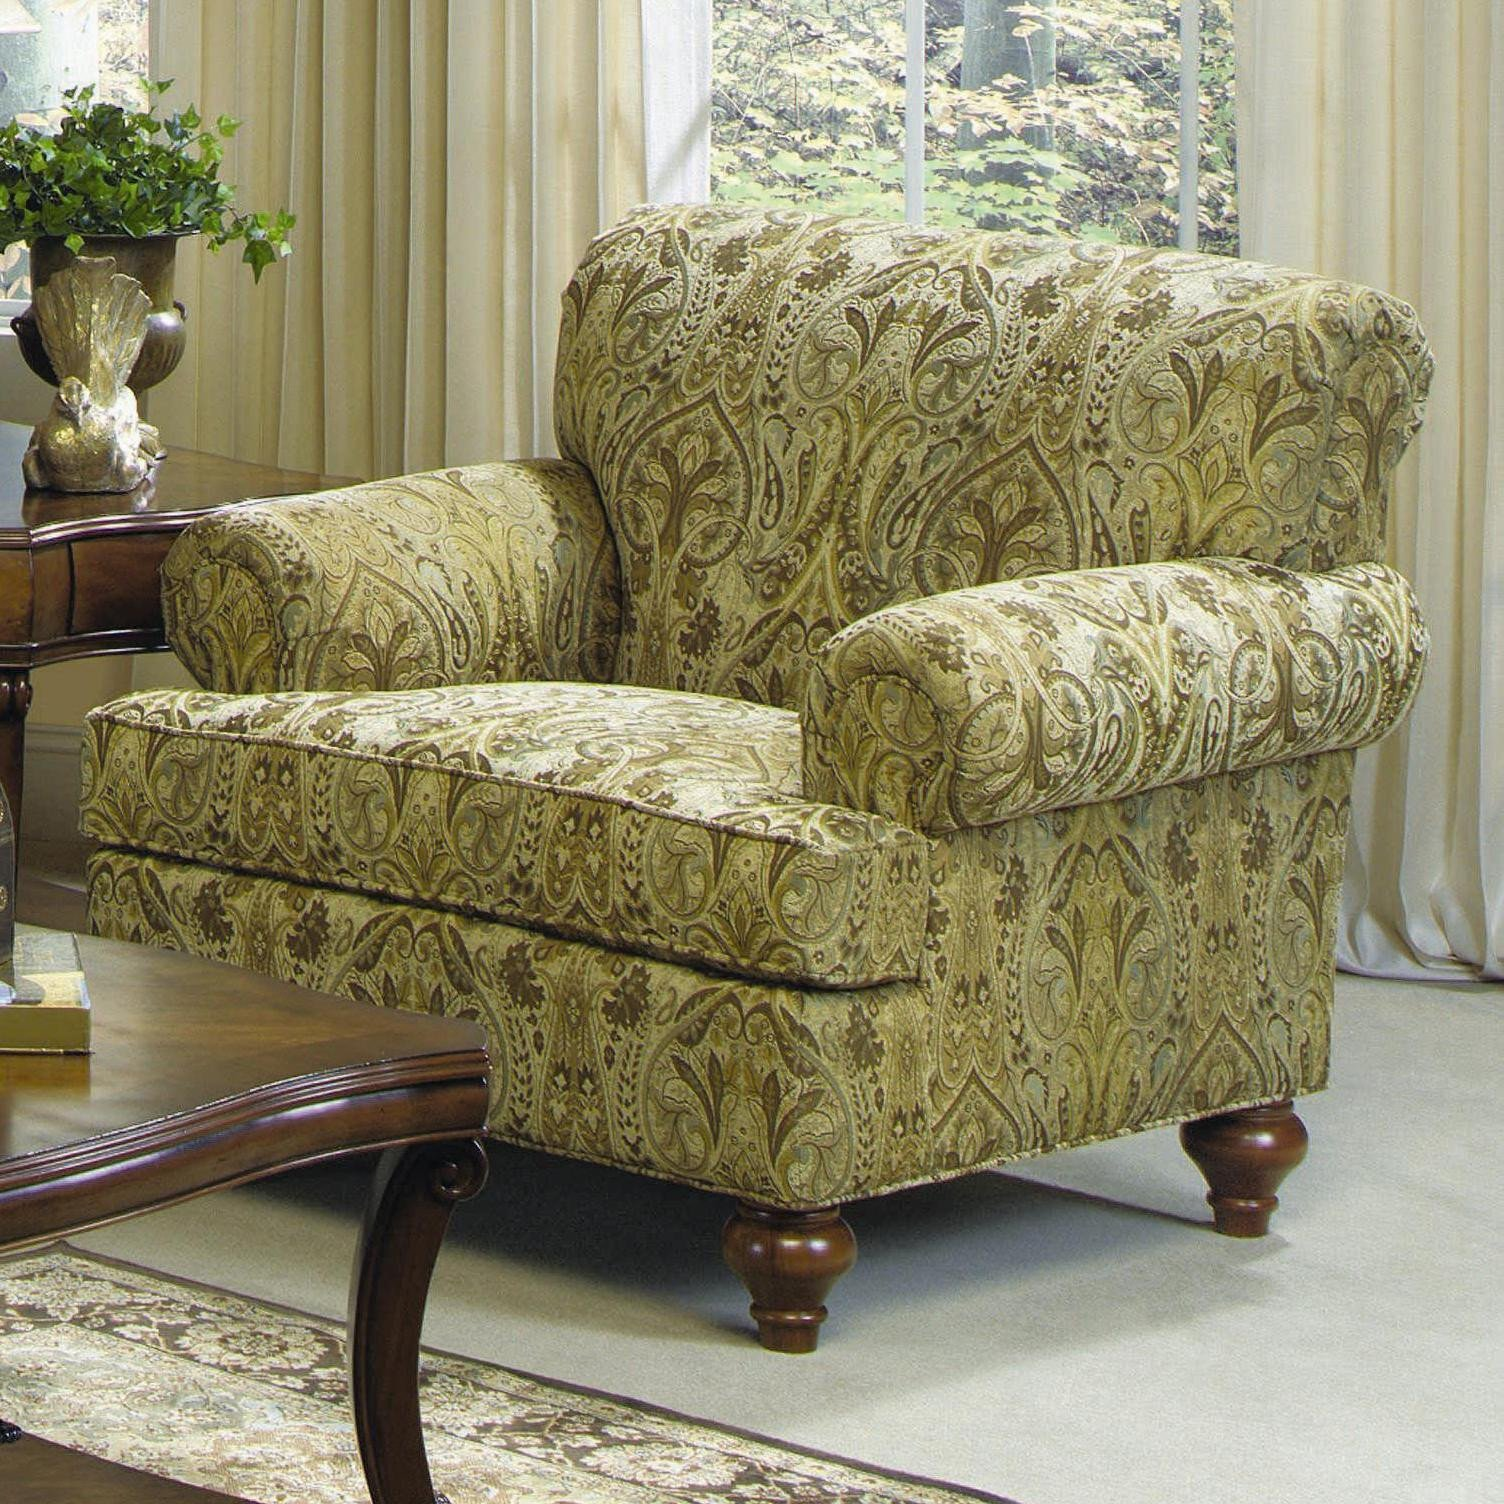 Traditional Living Room Upholstered Chairs Craftmaster 7047 Traditional Upholstered Chair with Turned